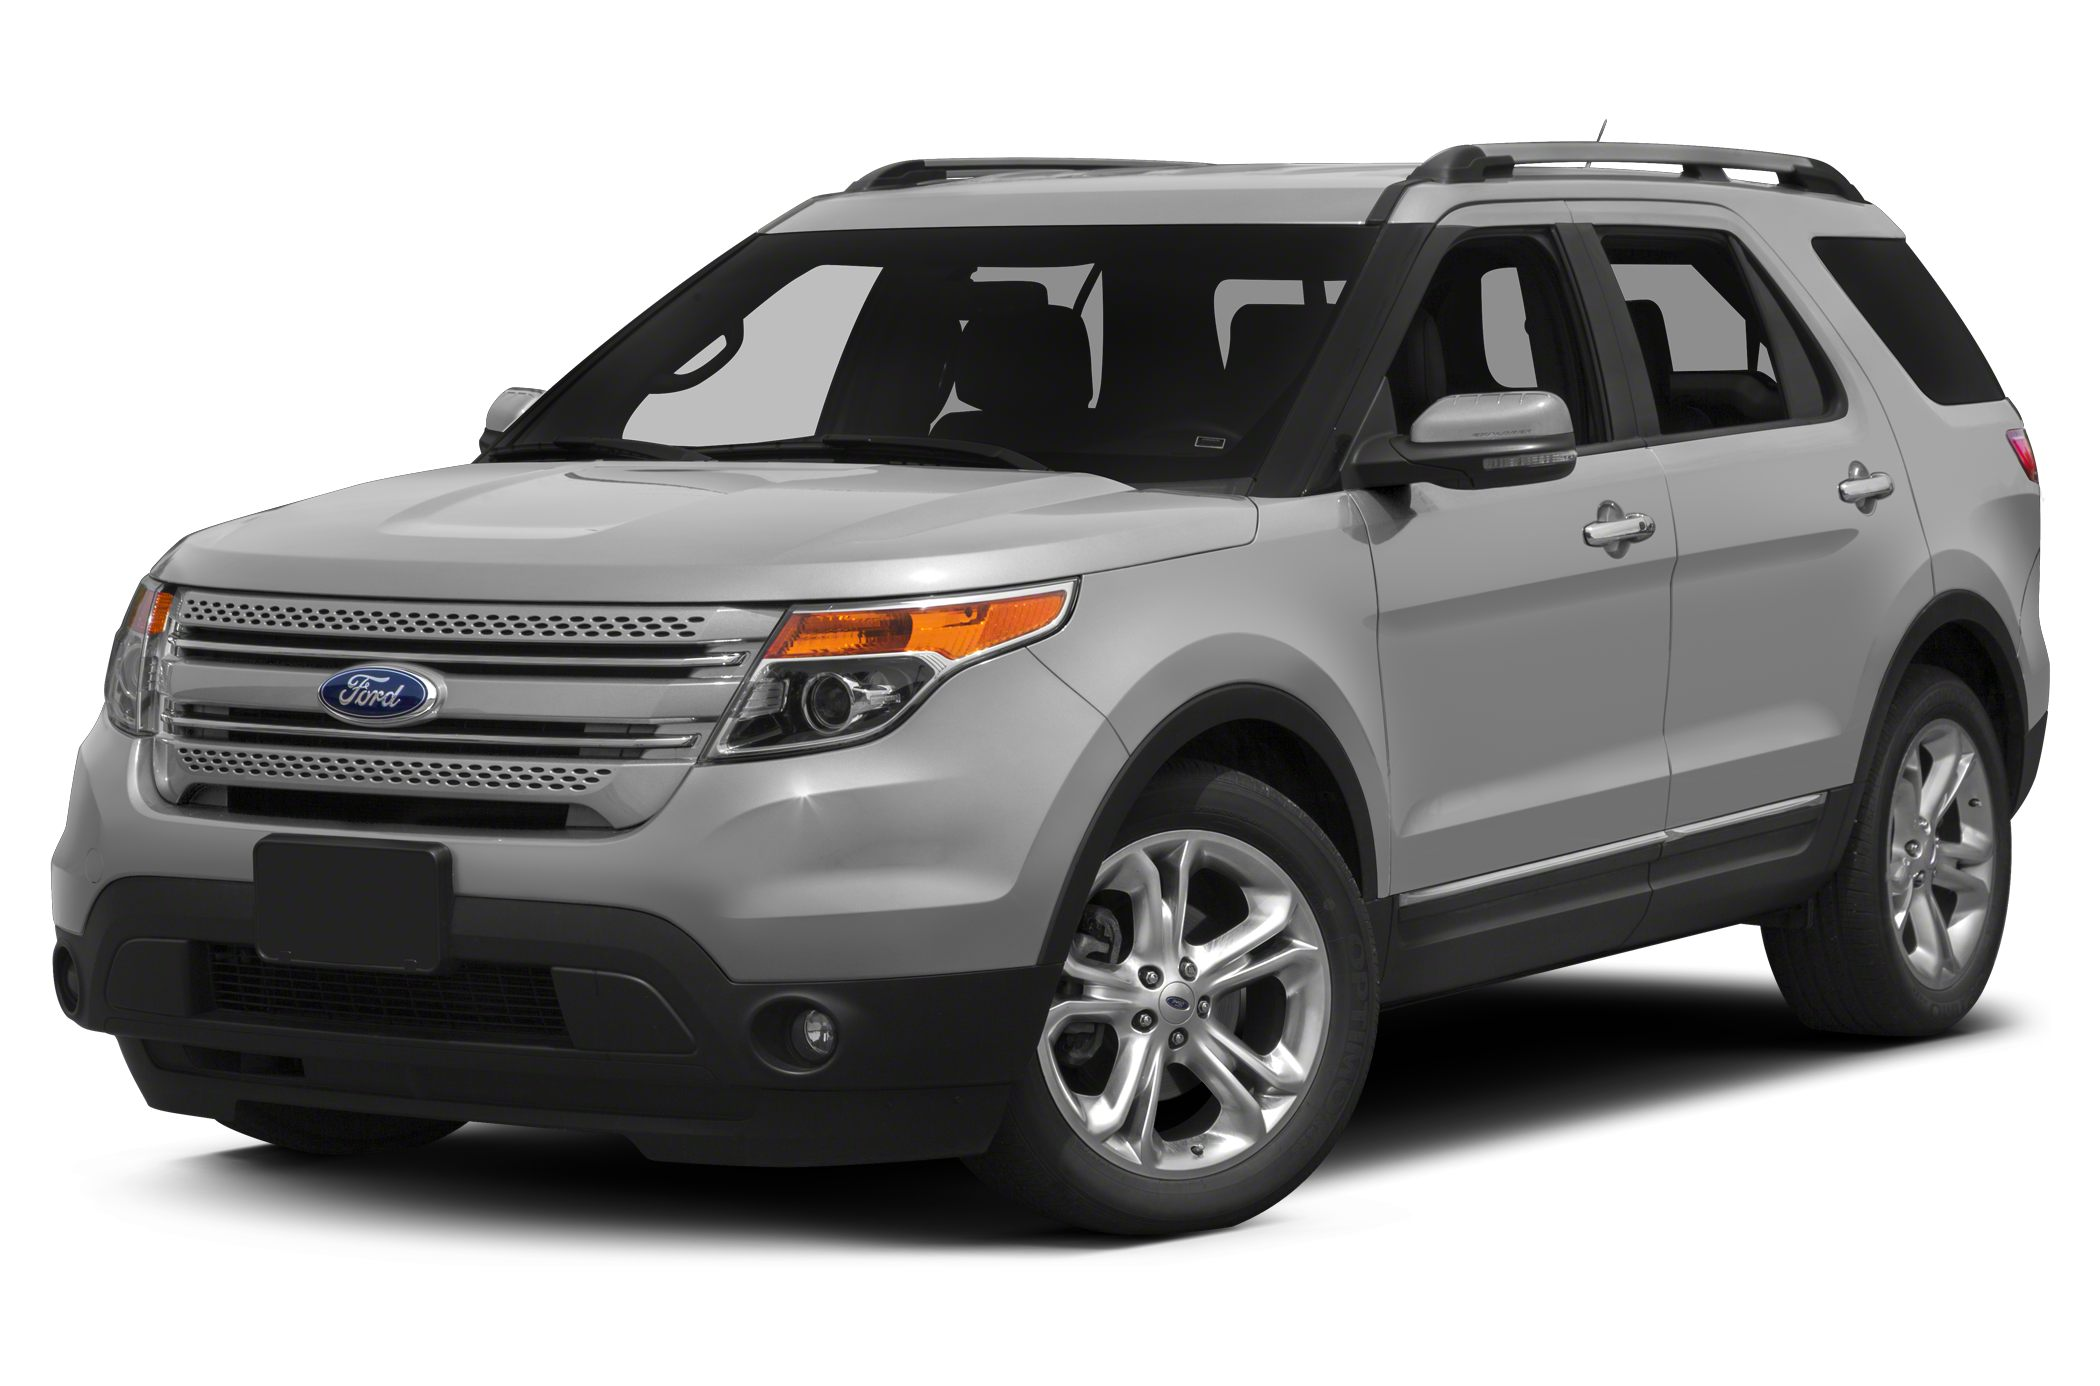 2015 Ford Explorer Limited Auto Check 1 Owner and Ford Certified Pre-Owned Explorer Limited Char